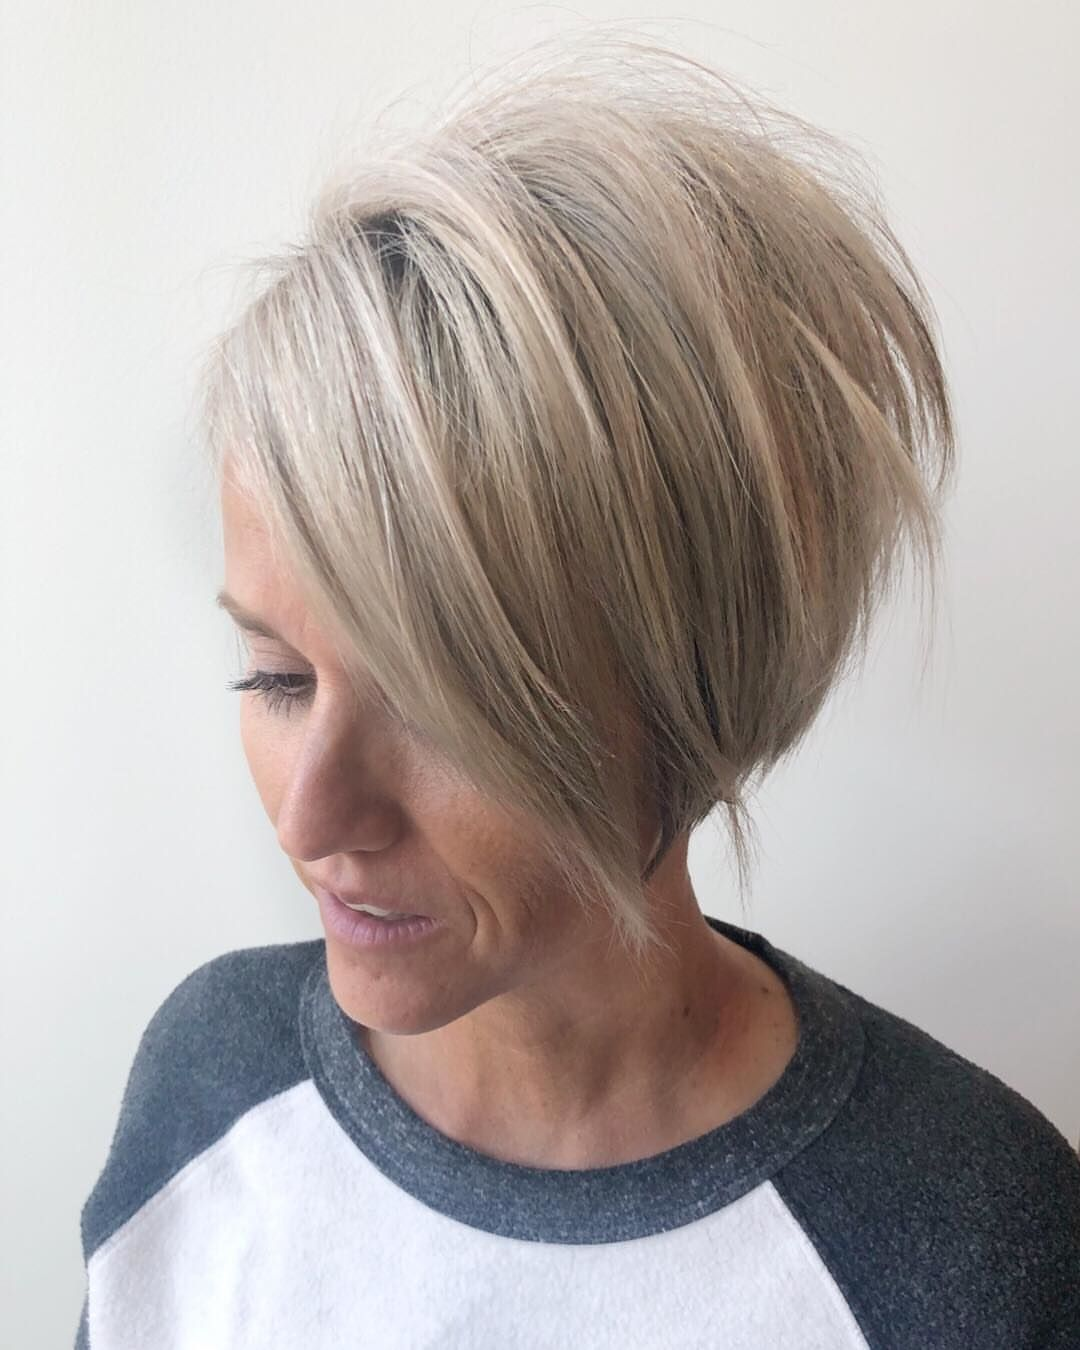 Pretty Pixie Haircuts For 2019 Our Nailpixie Haircuts 2019 Pixie Bob Haircut Bobs Haircuts Pixie Haircut